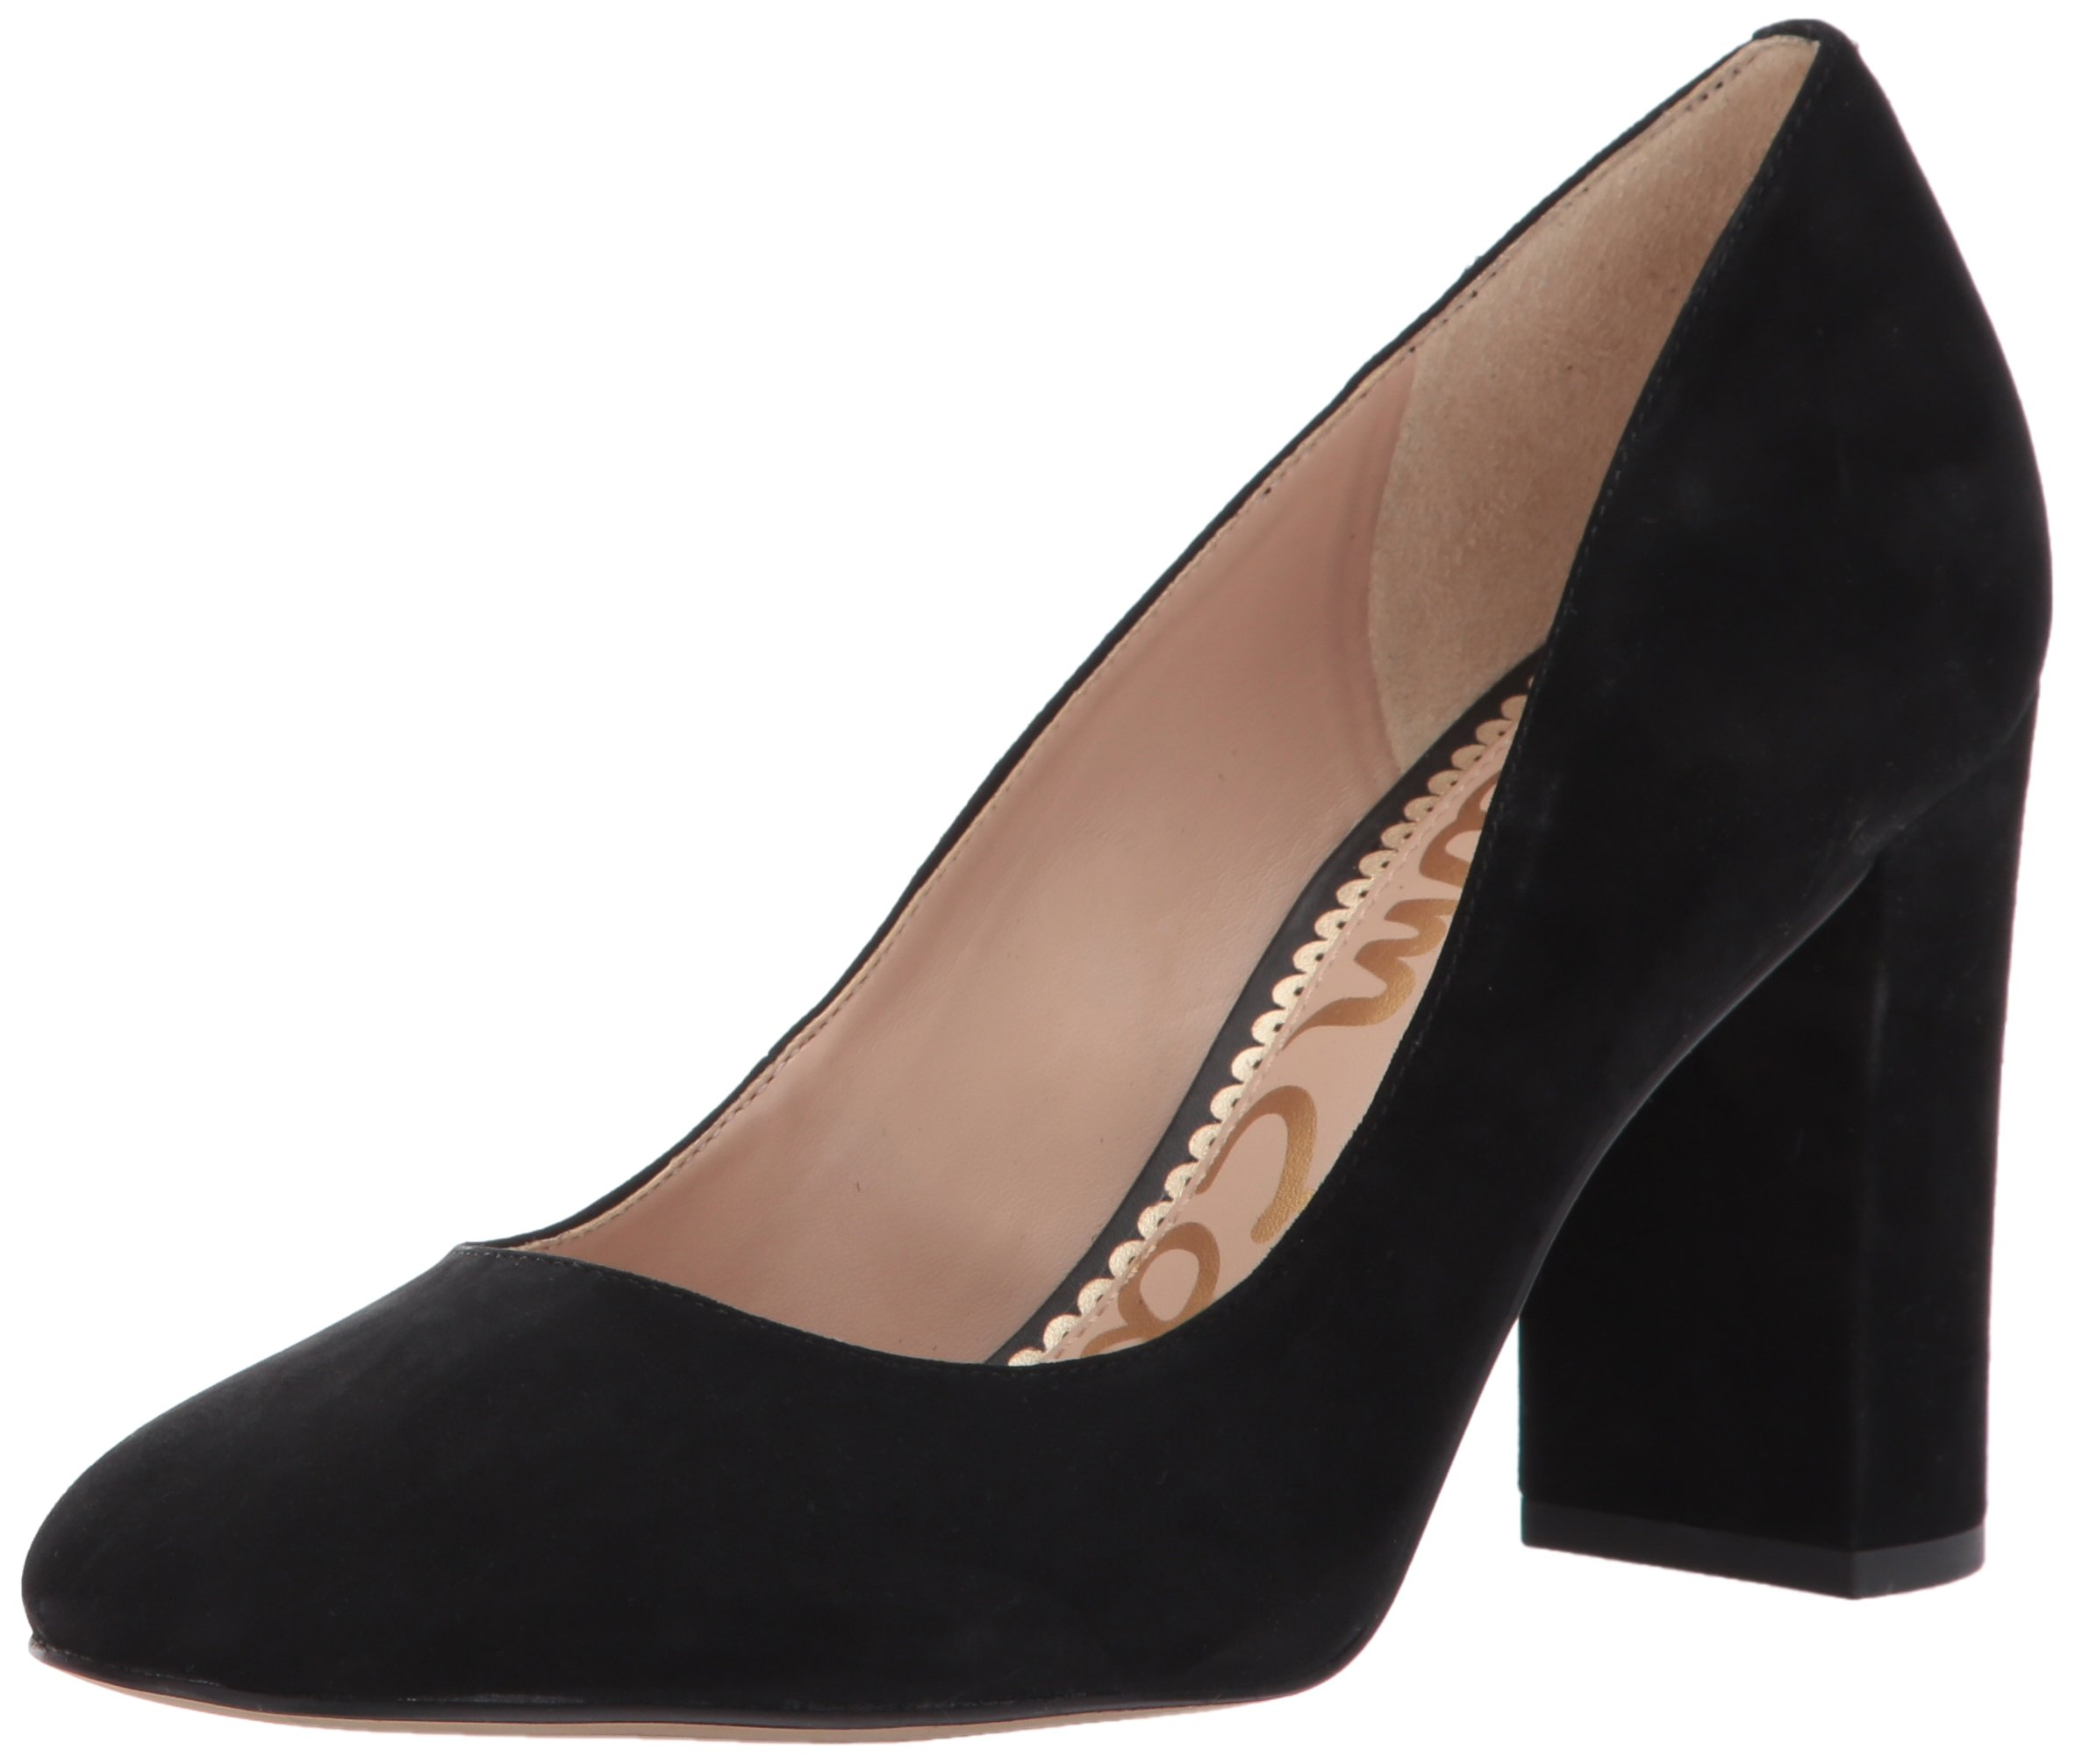 Sam Edelman Women's Stillson Pump, Black Suede, 7.5 M US